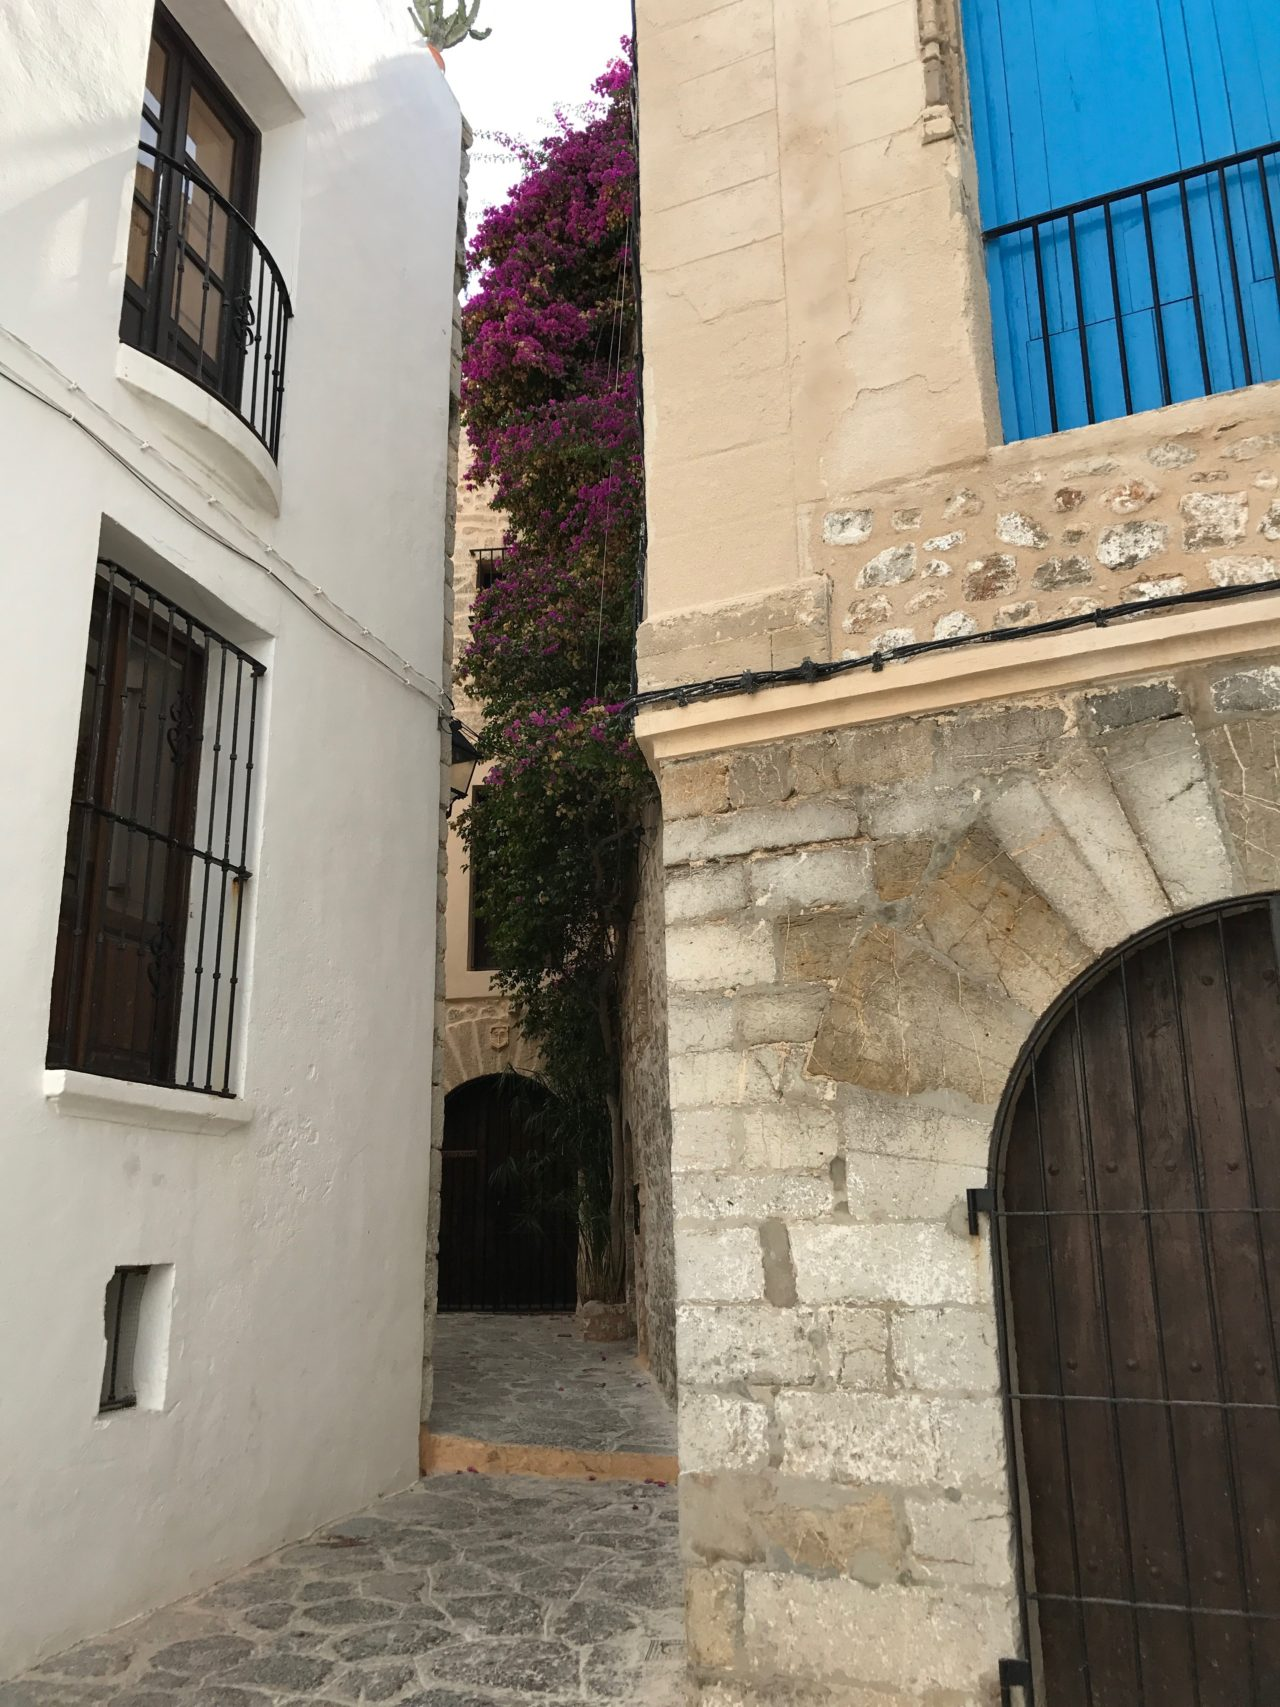 Narrow Stone House Alley Way With Windows And Doors